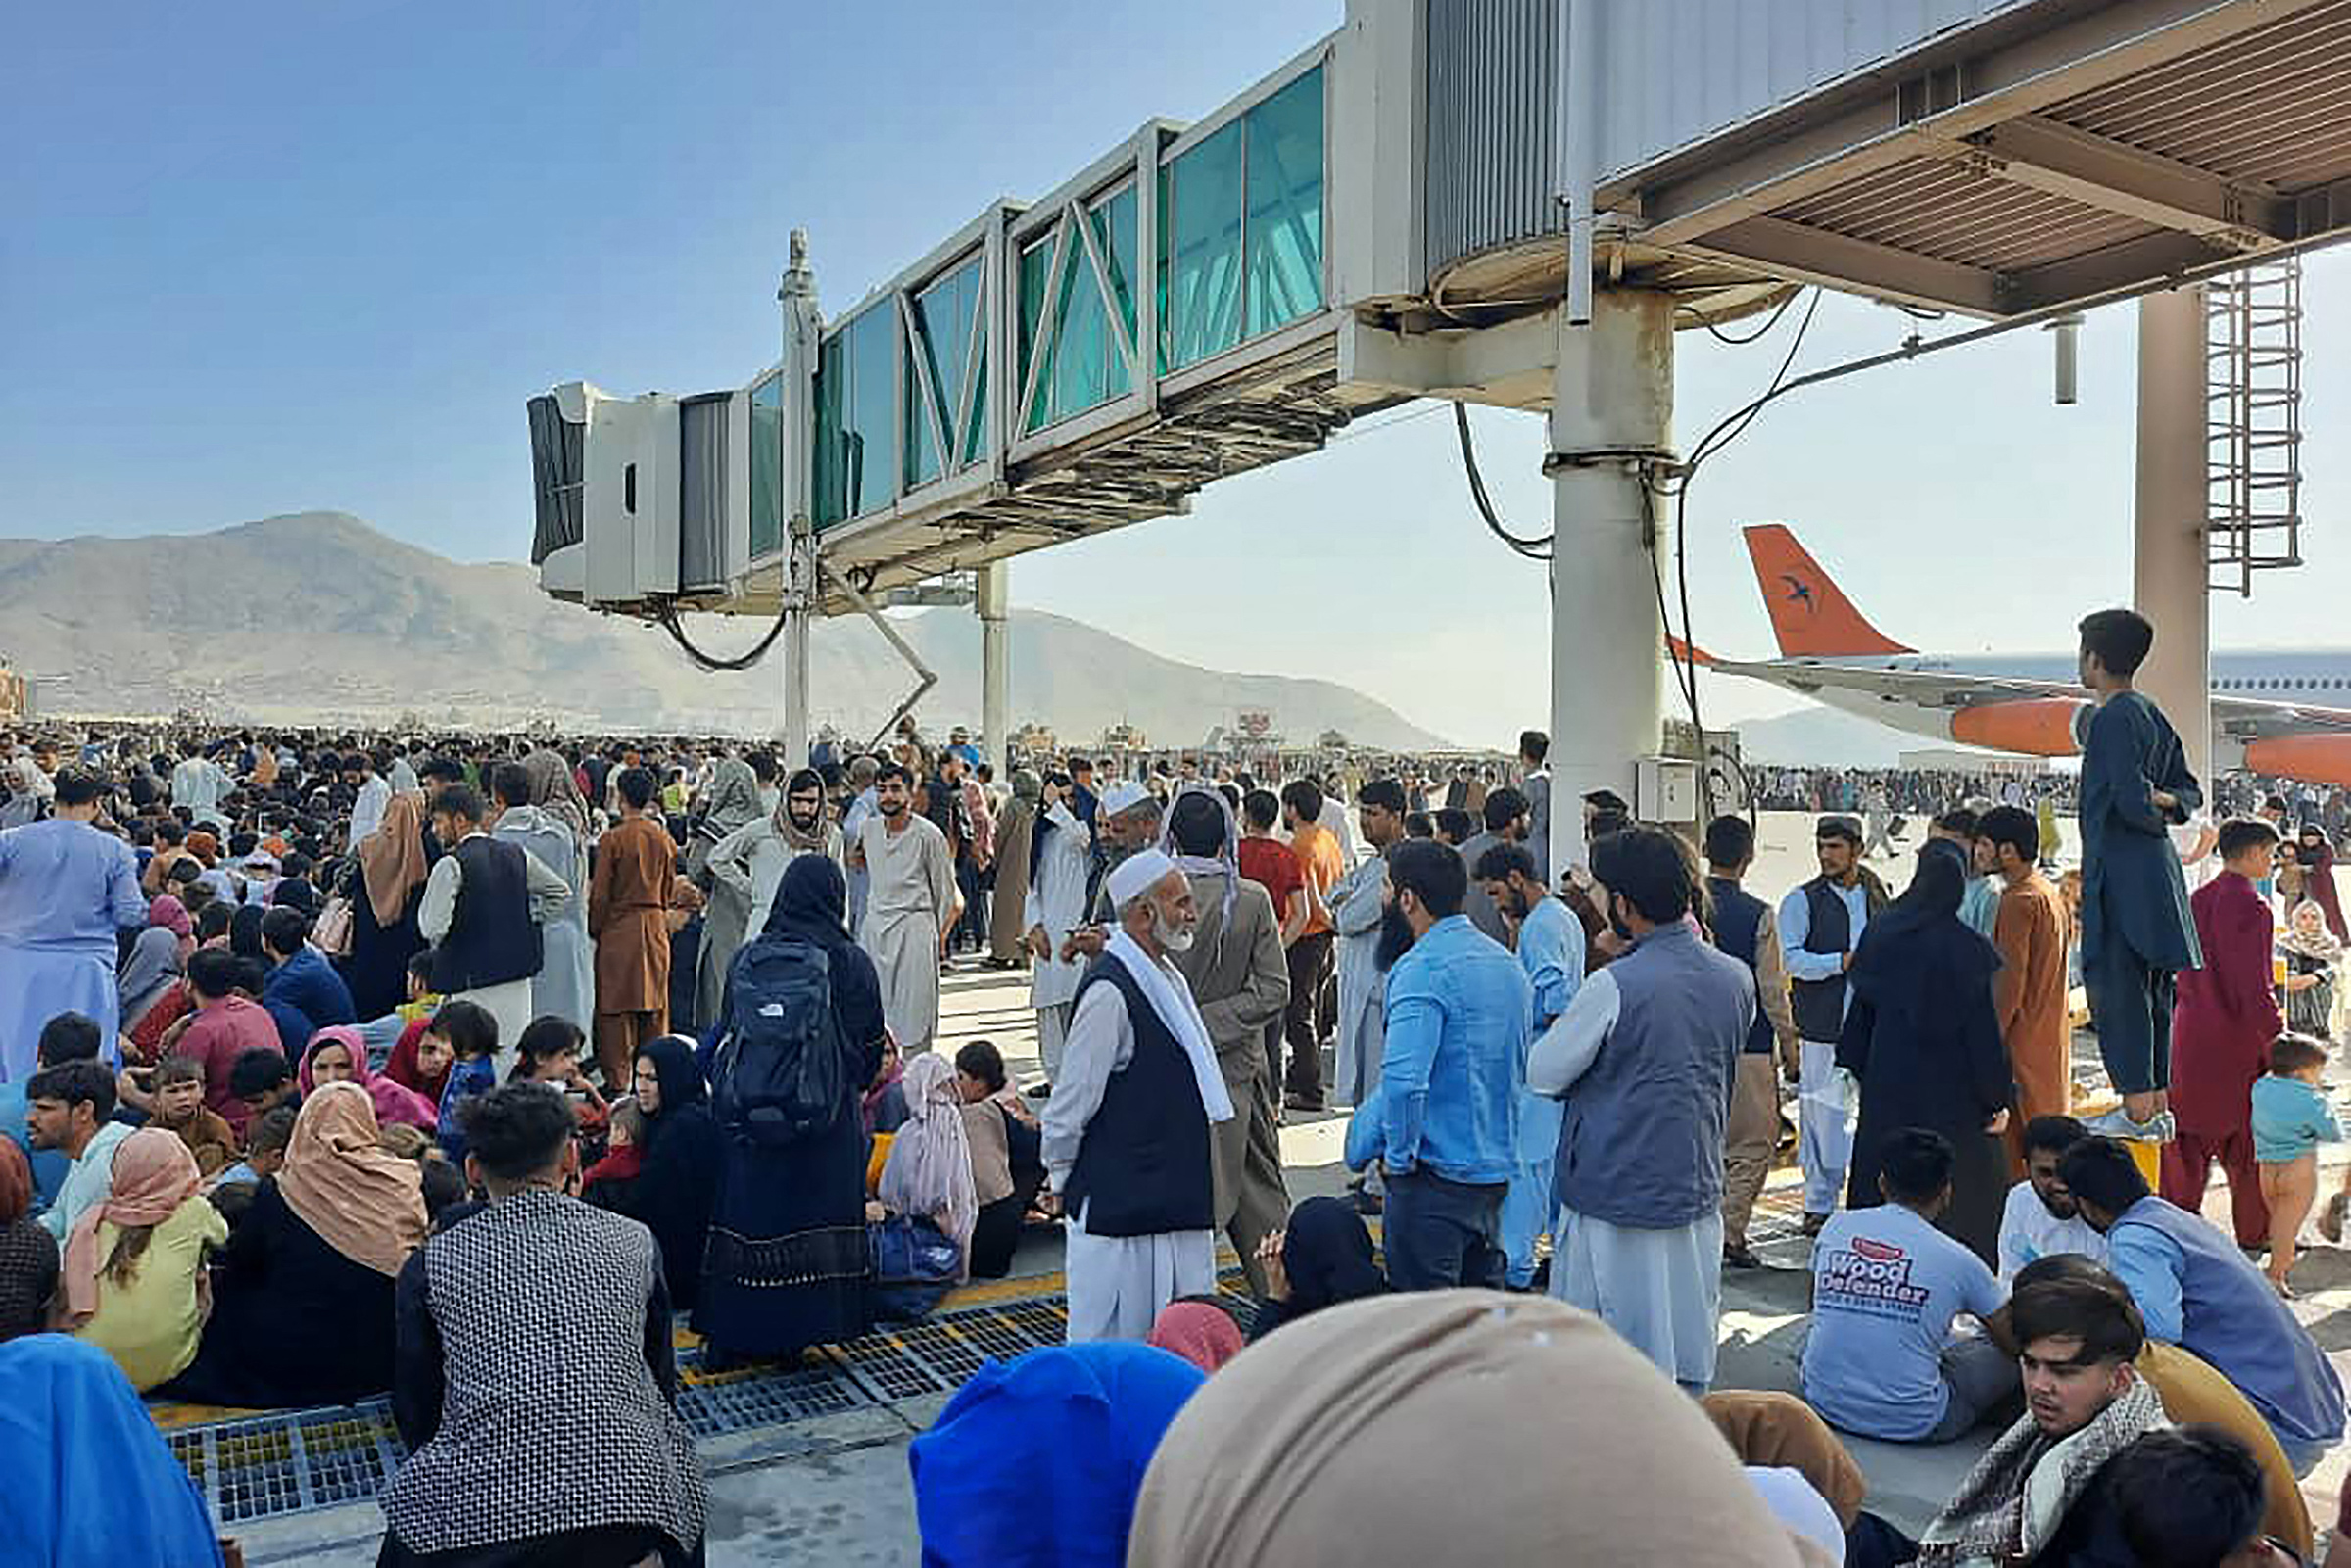 Afghans fleeing the Taliban's arrival in Kabul crowd the tarmac of the airport on Aug. 16, 2021.